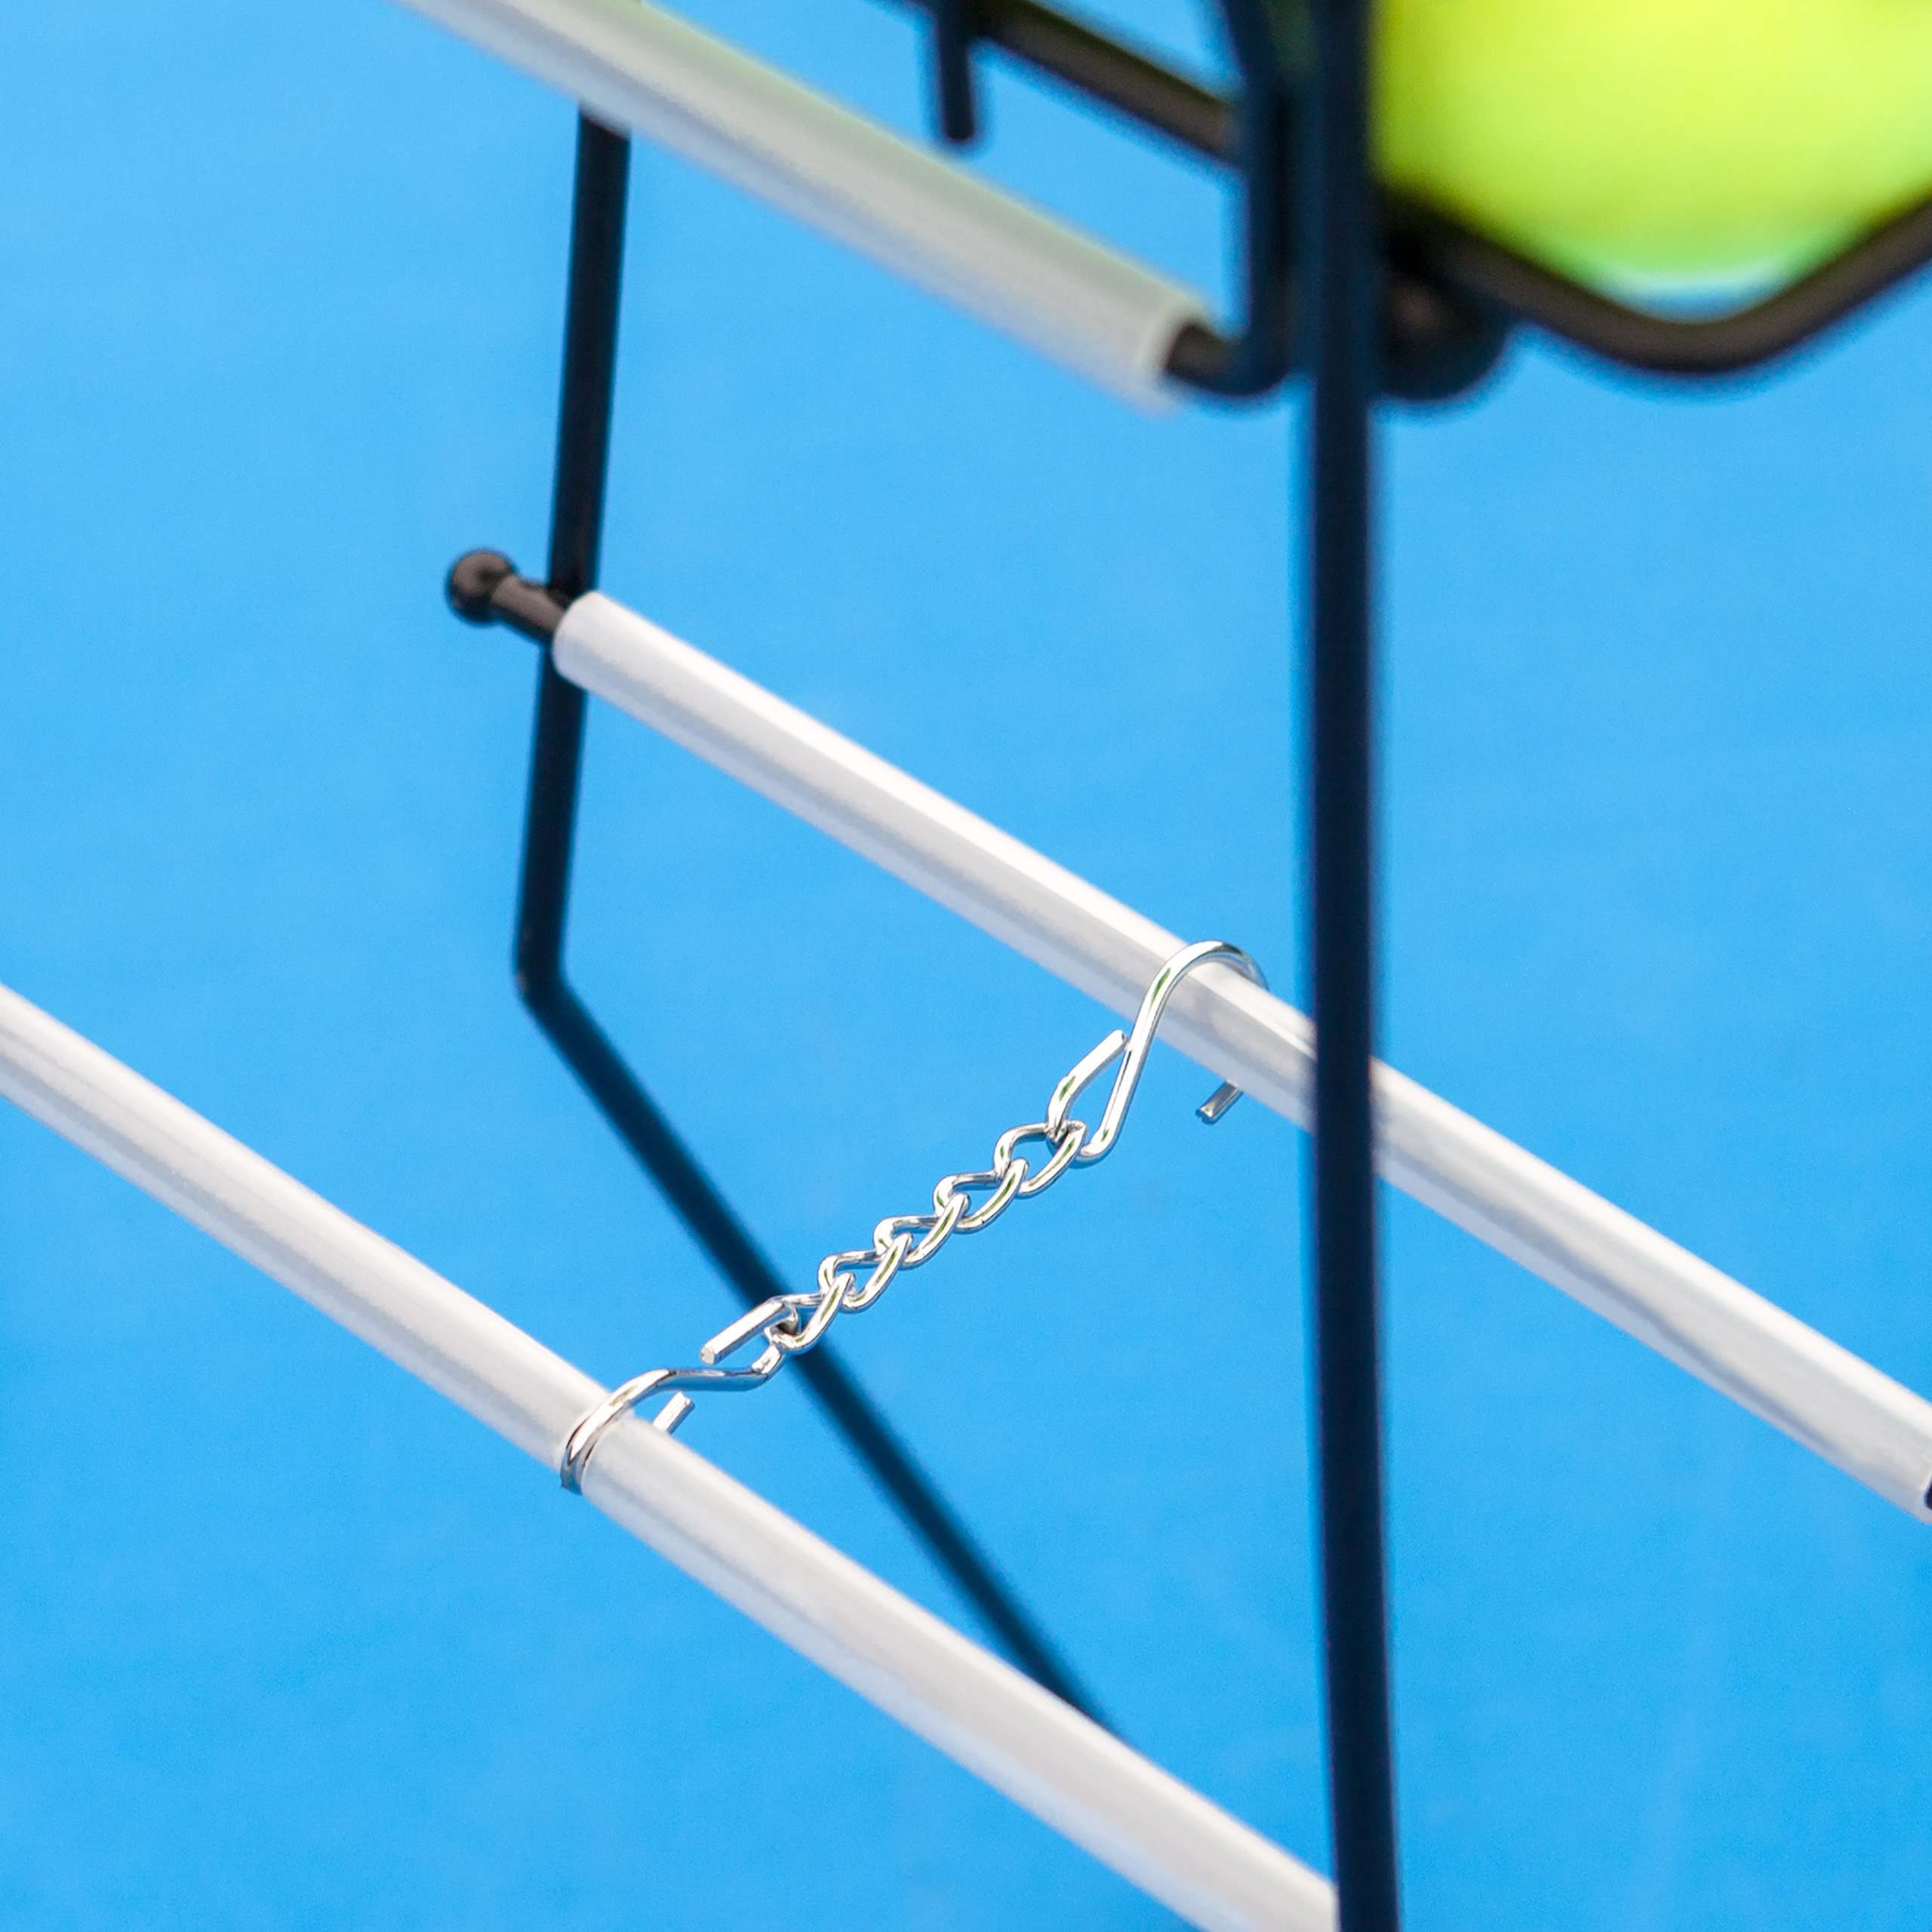 Tennis Ball Basket/Hopper Locking System